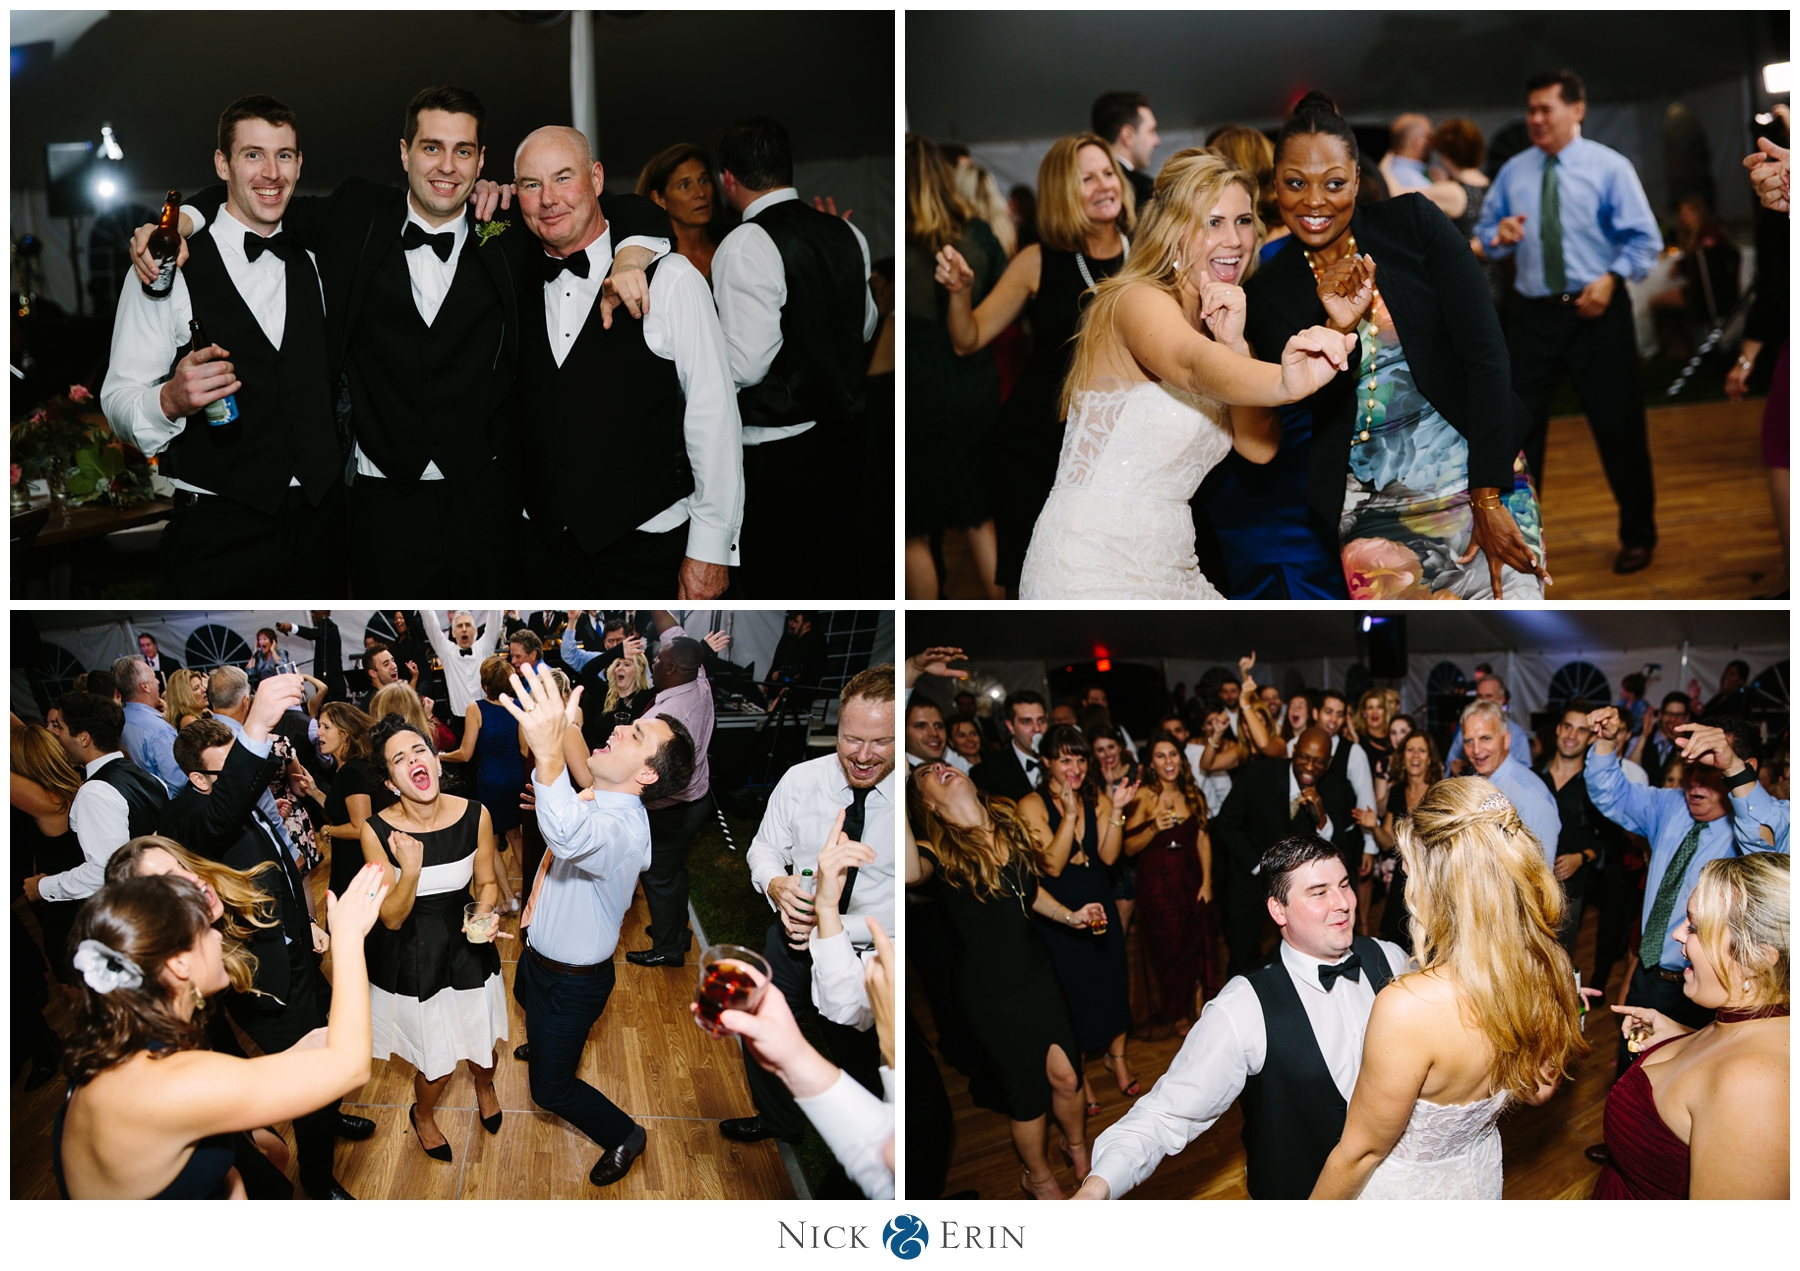 donner_photography_leesburg-virginia-wedding_erin-stuart_0030